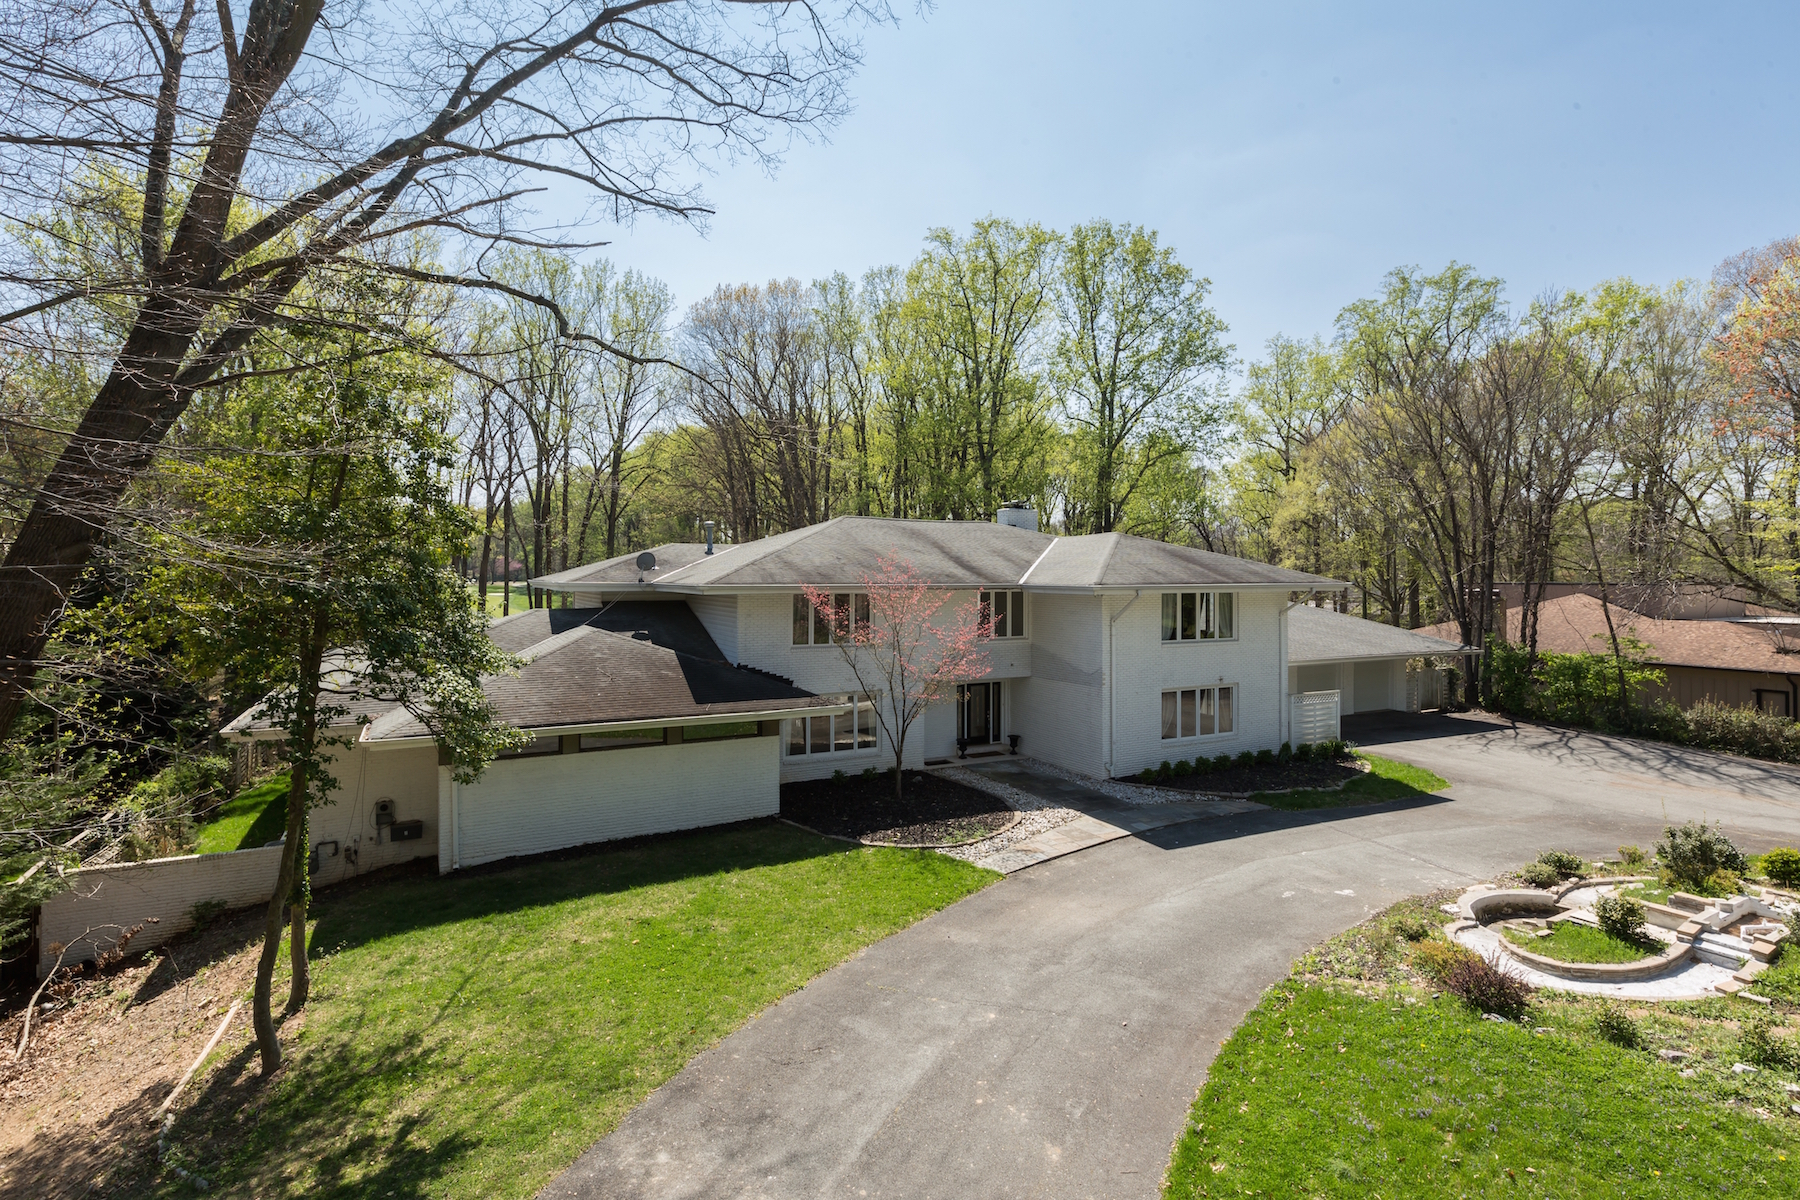 Additional photo for property listing at 7318 Arrowood Rd. Bethesda, MD  Bethesda, Maryland 20817 Vereinigte Staaten